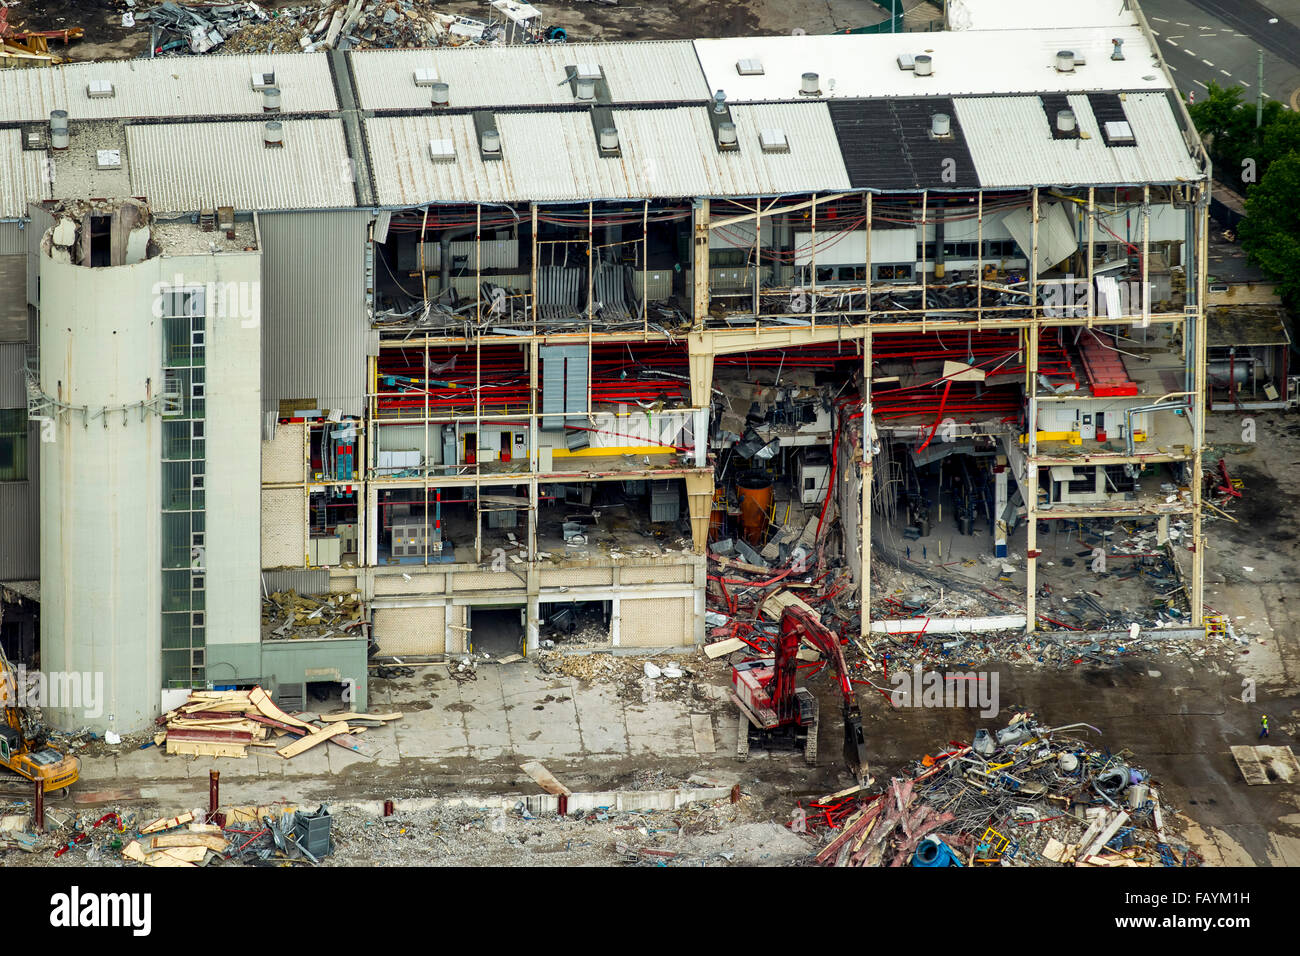 Aerial view, demolition work at the Opel plant 1, automotive, structural change, auto industry, Bochum, Ruhr area, - Stock Image